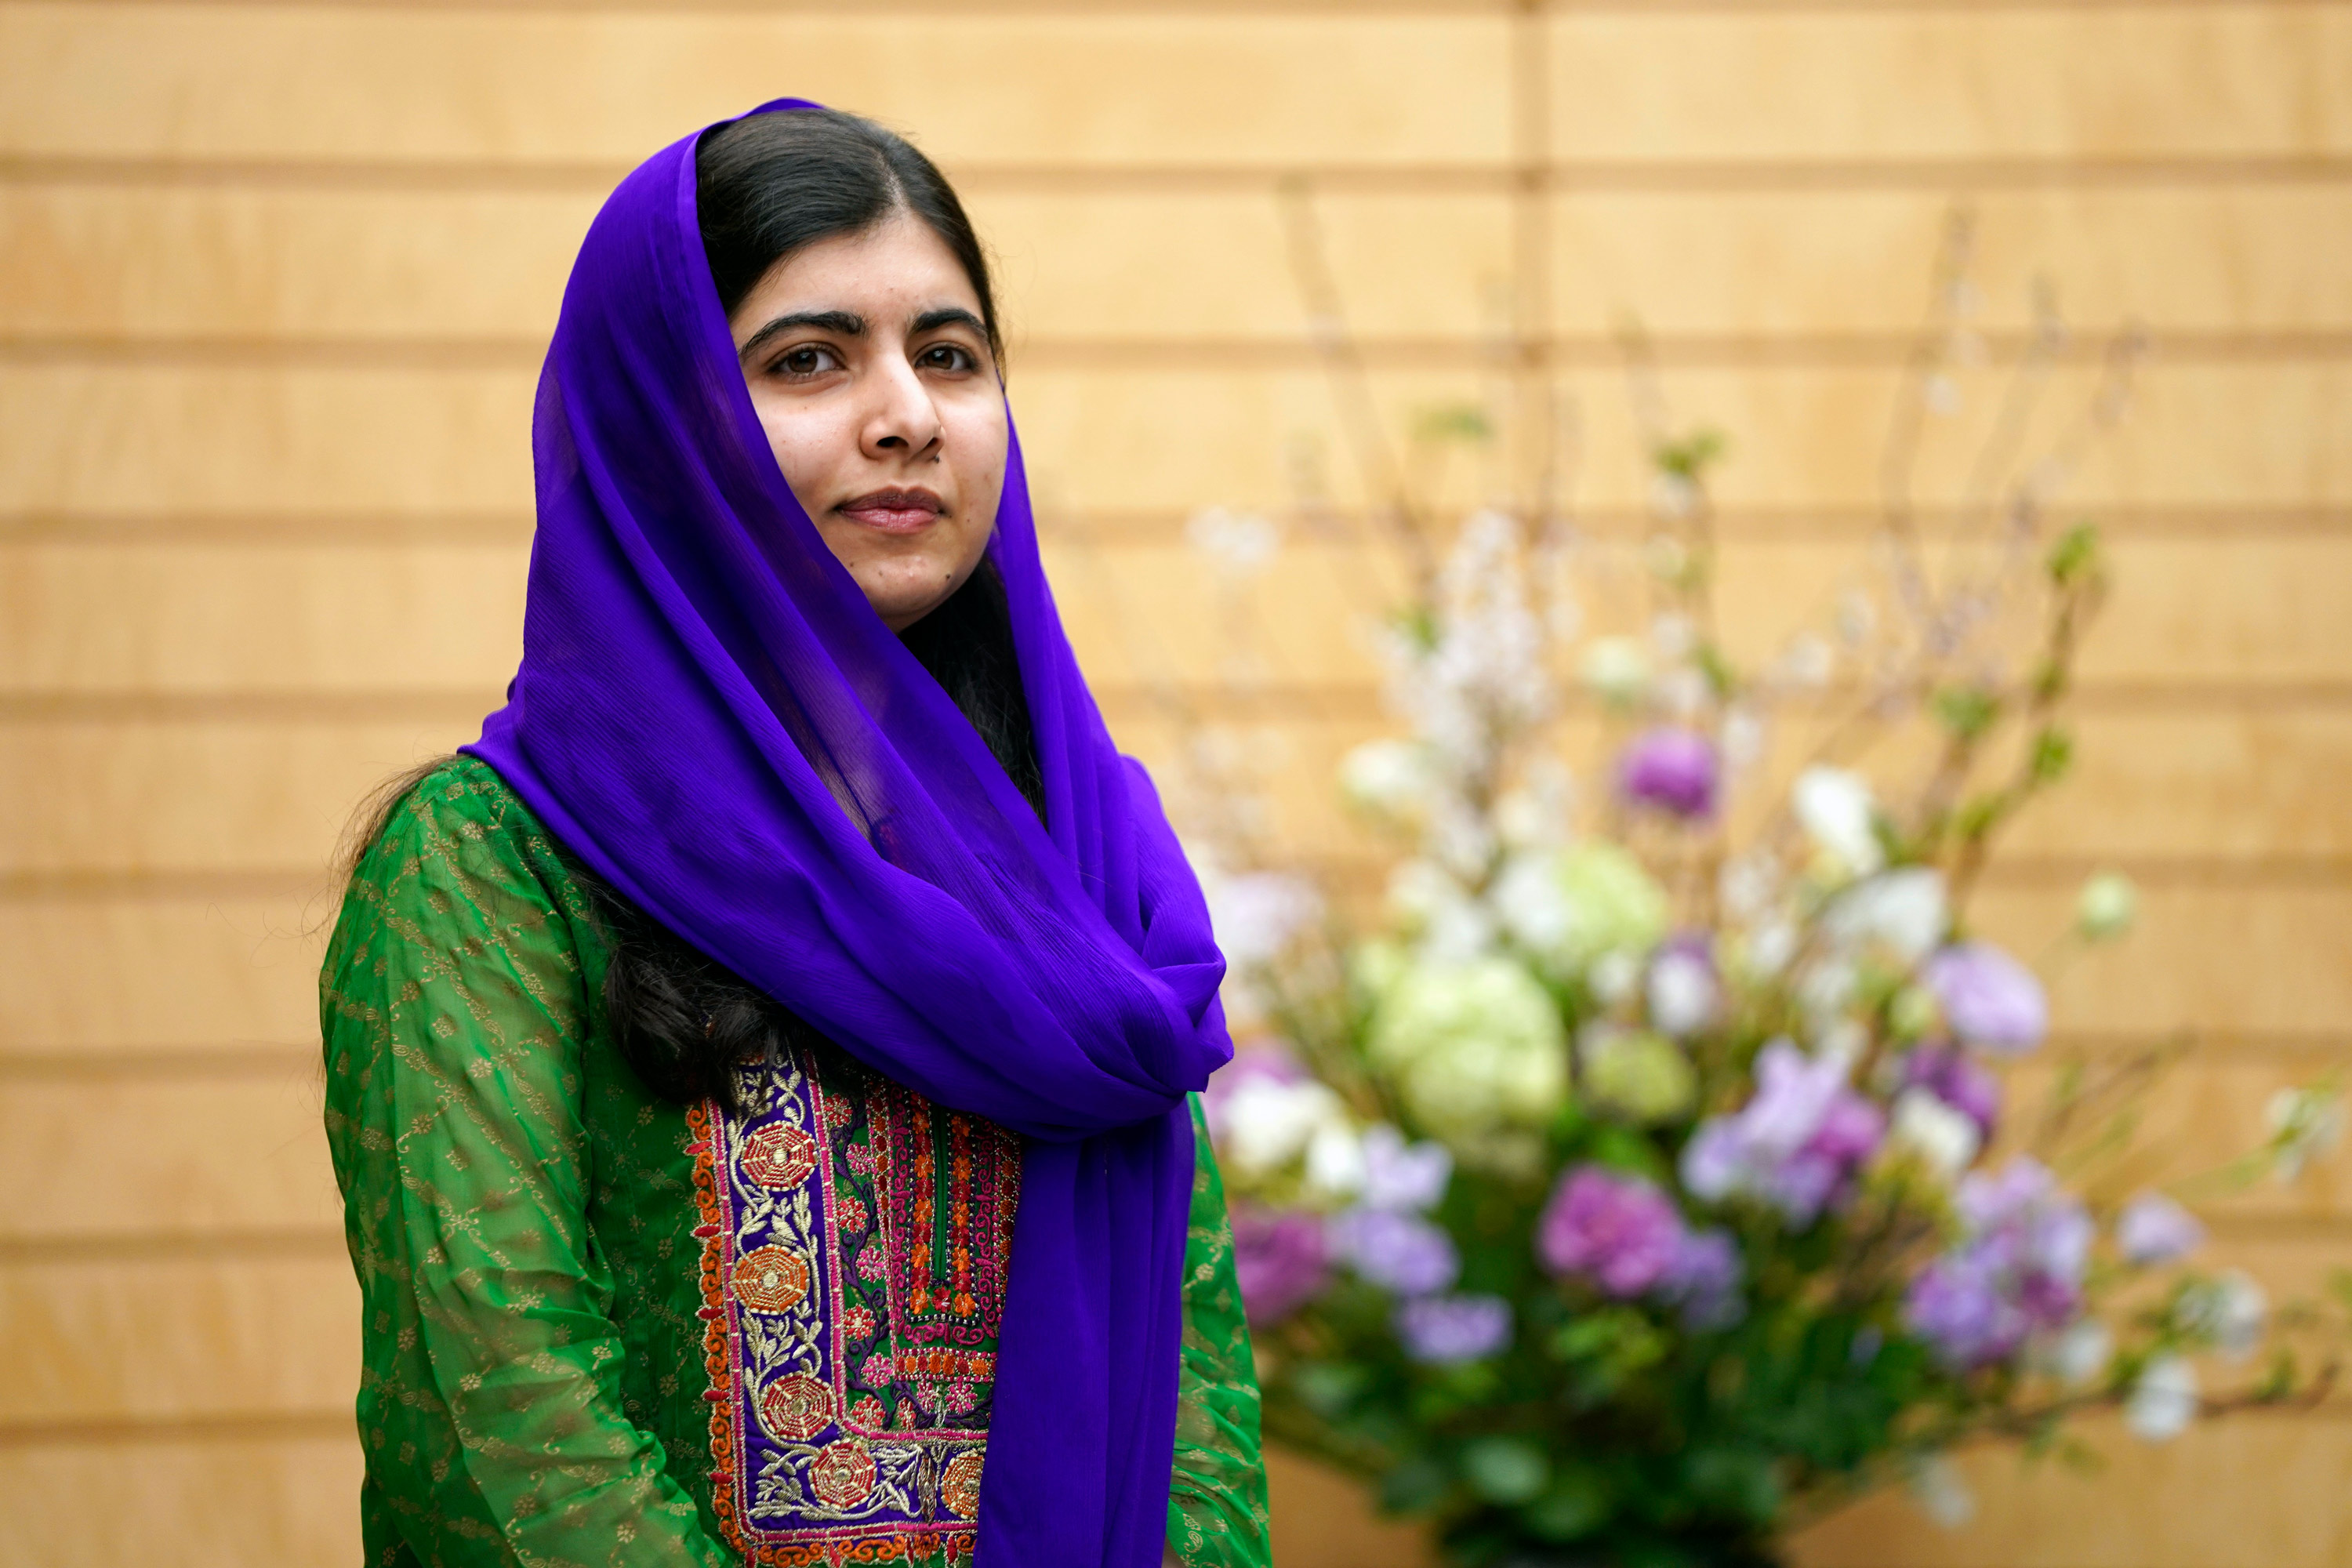 Malala Yousafzai lands Apple TV+ deal and discusses her hope for International Women's Day